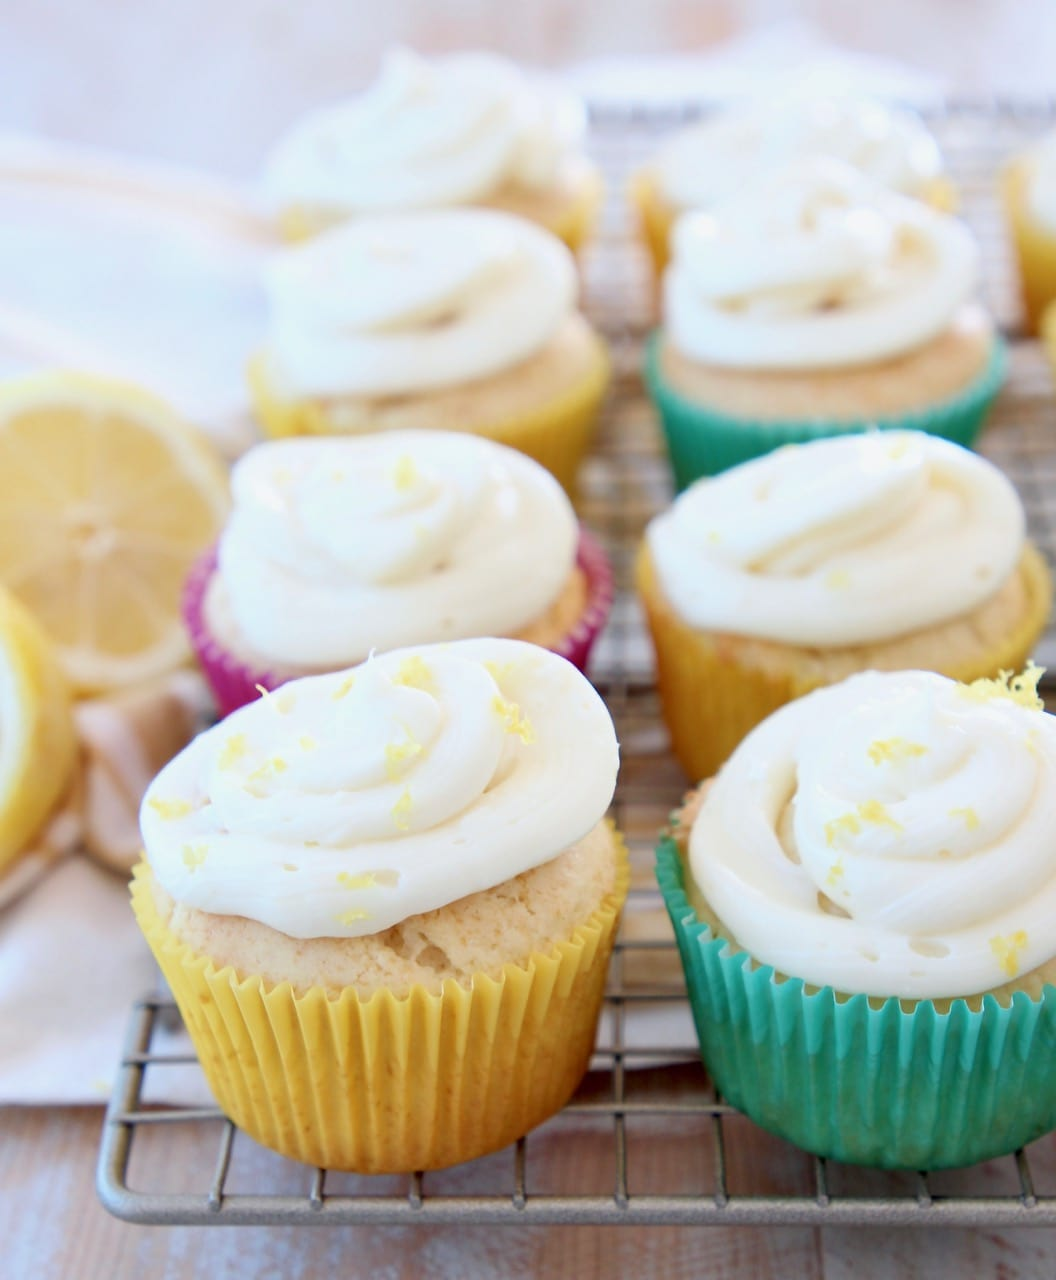 Lemon cupcakes with cream cheese frosting sitting on wire rack